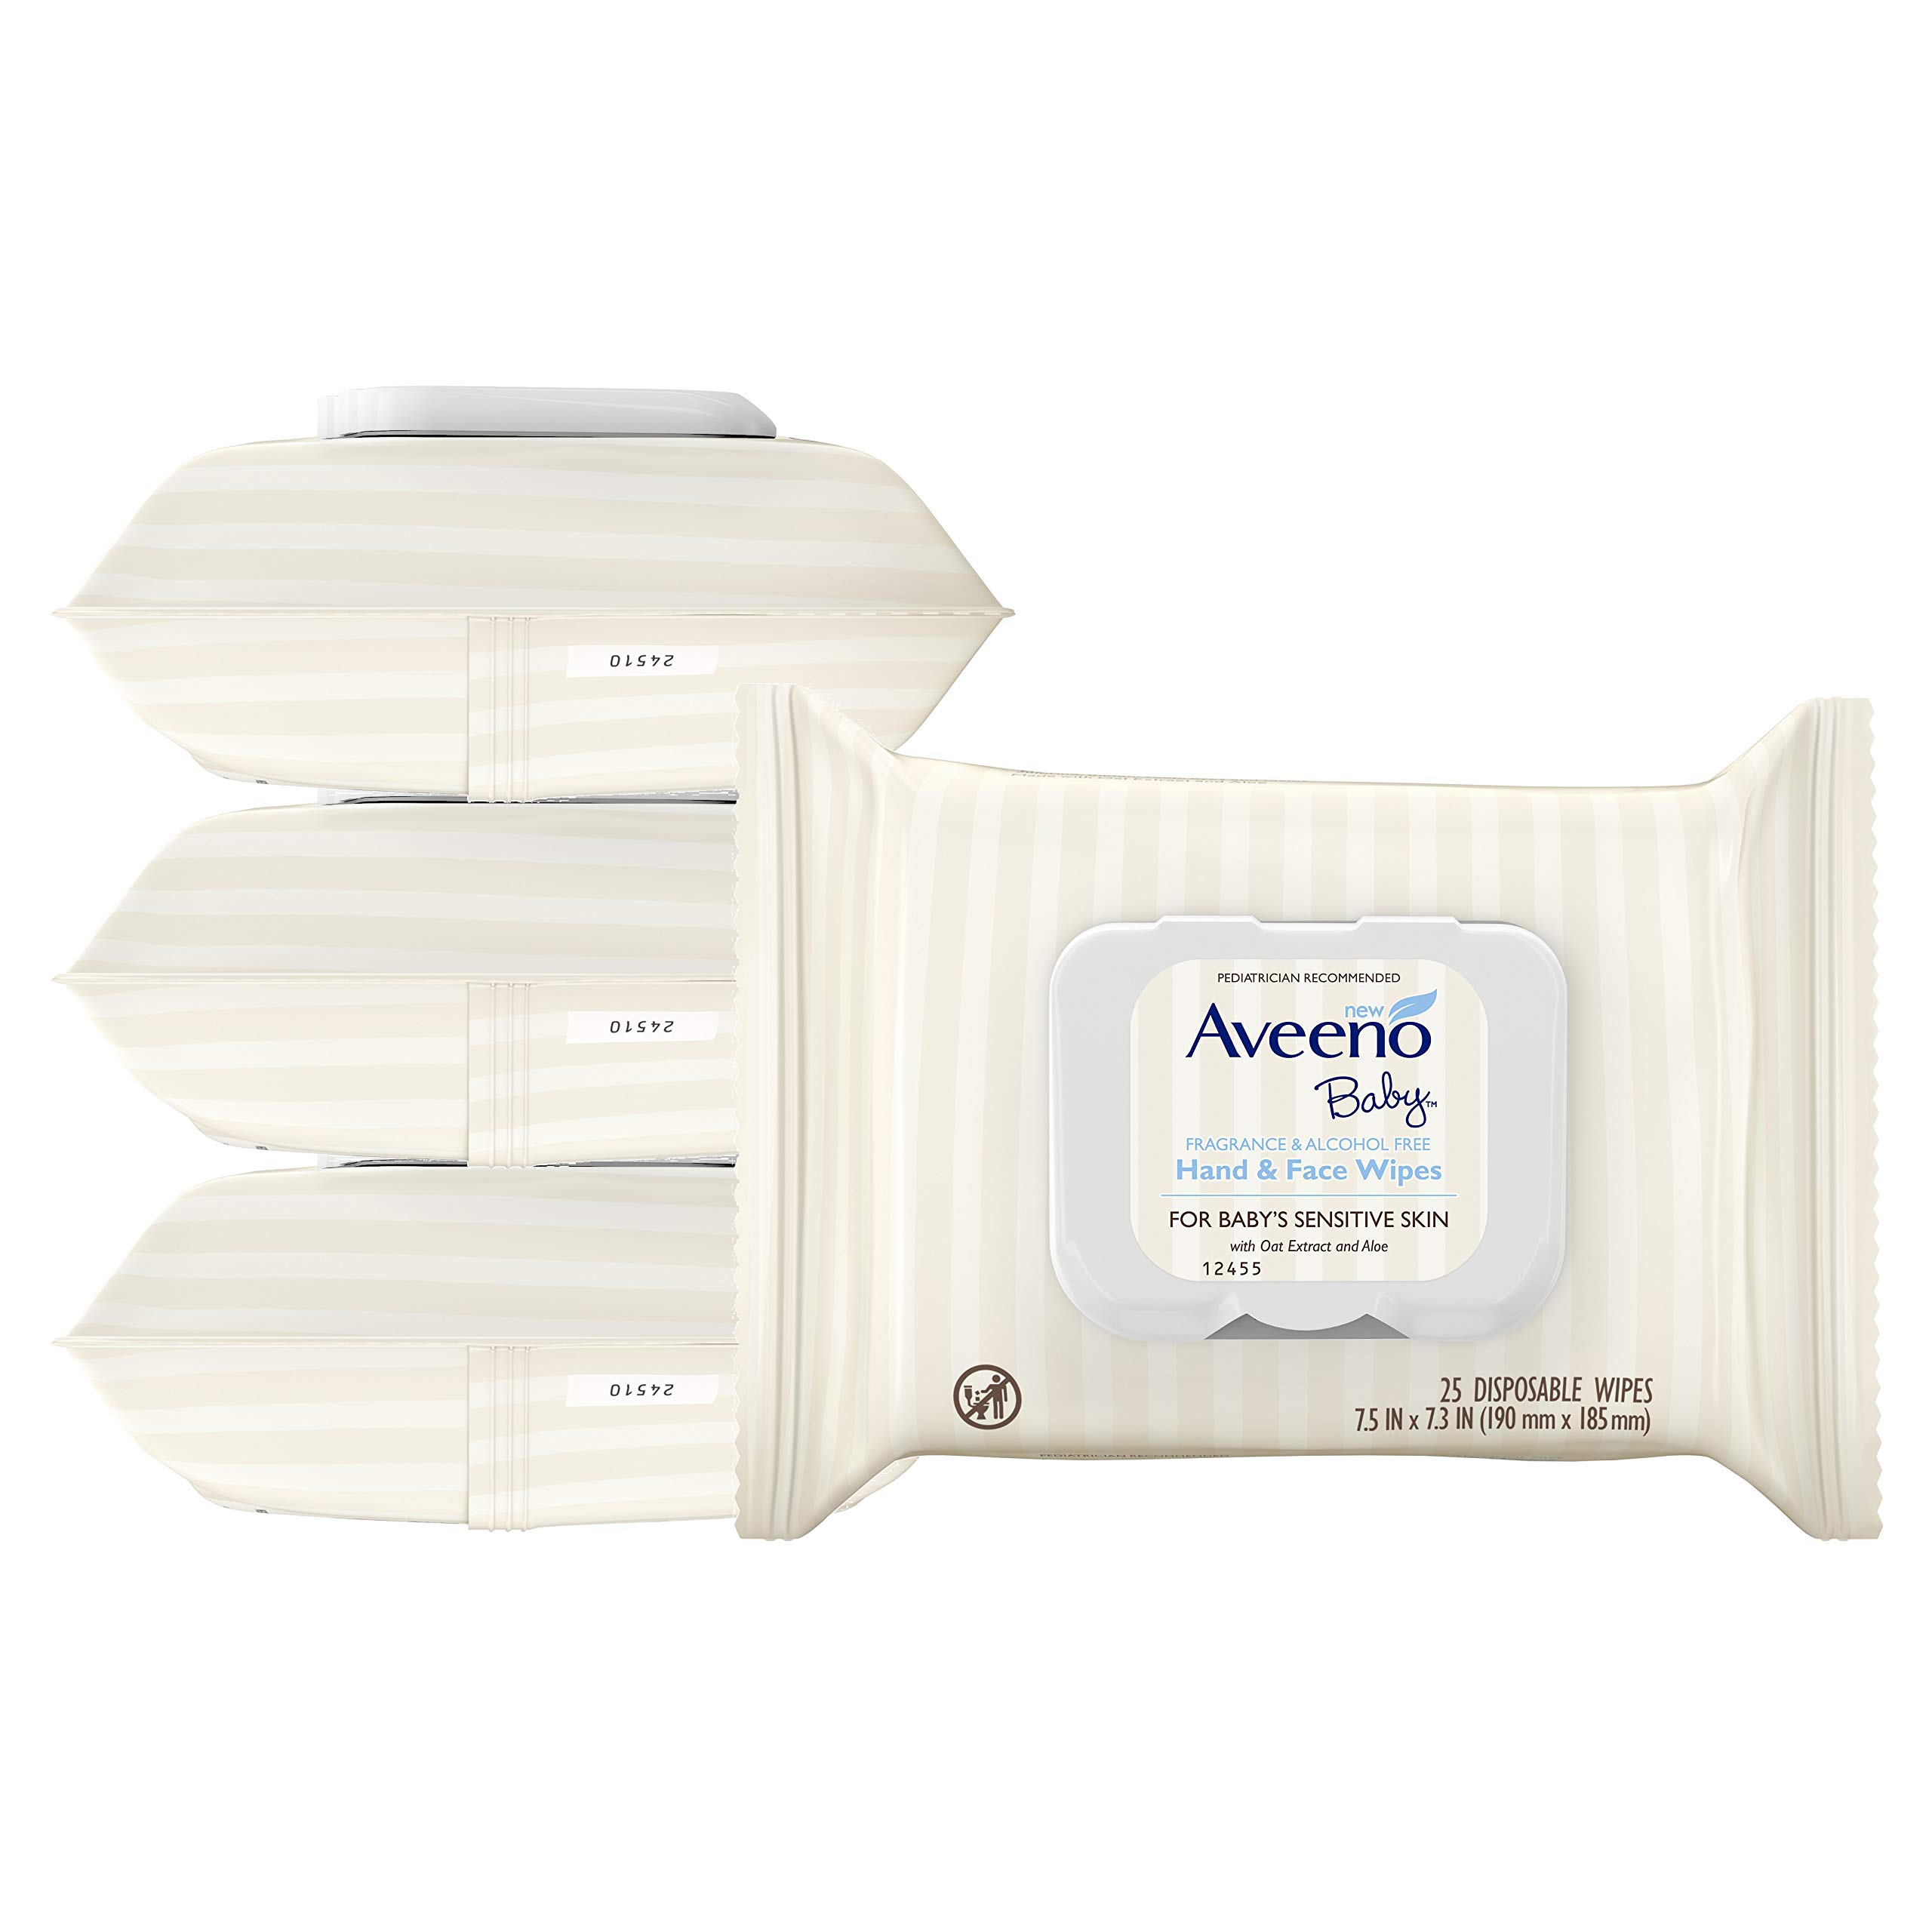 Aveeno Baby Hand & Face Baby Wipes with Oat Extract 25 Count (Pack of 4) by Aveeno Baby